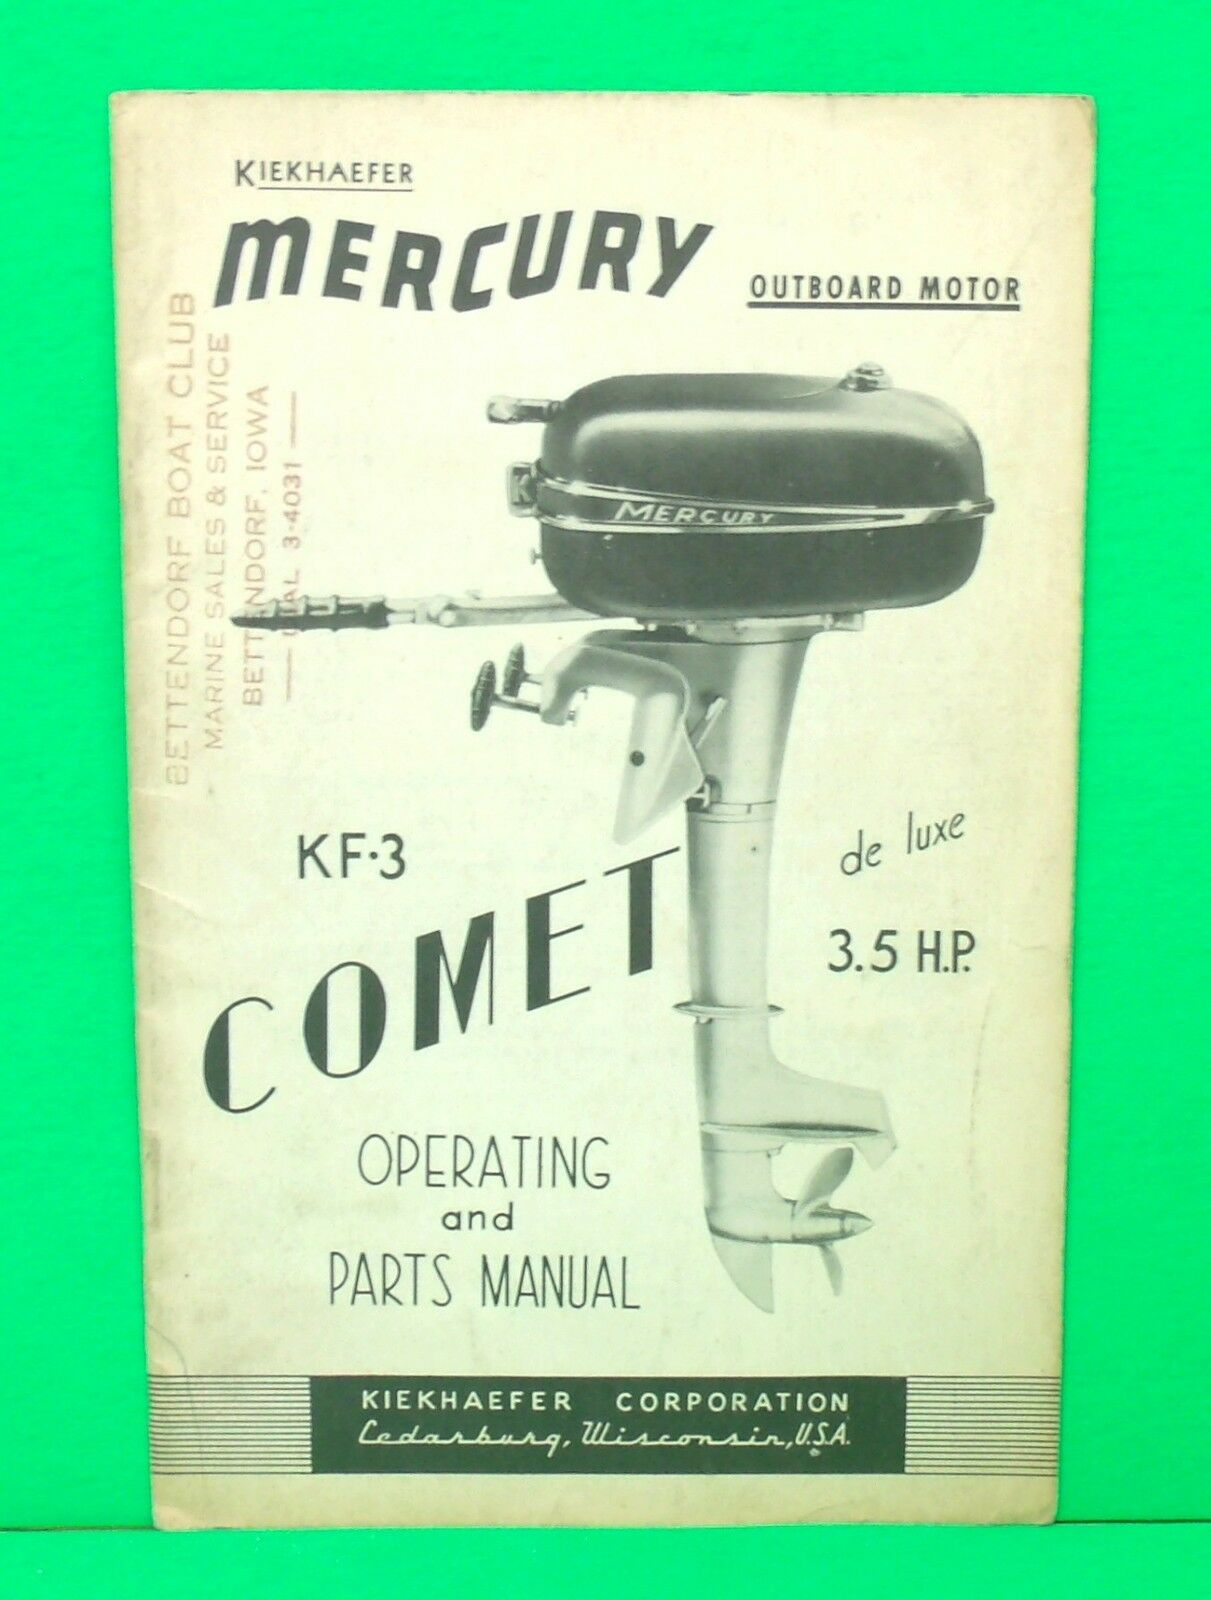 Original 1949 Kiekhaefer Mercury KF-3 COMET Operating & Parts / Owners  Manual 1 of 1Only 1 available ...